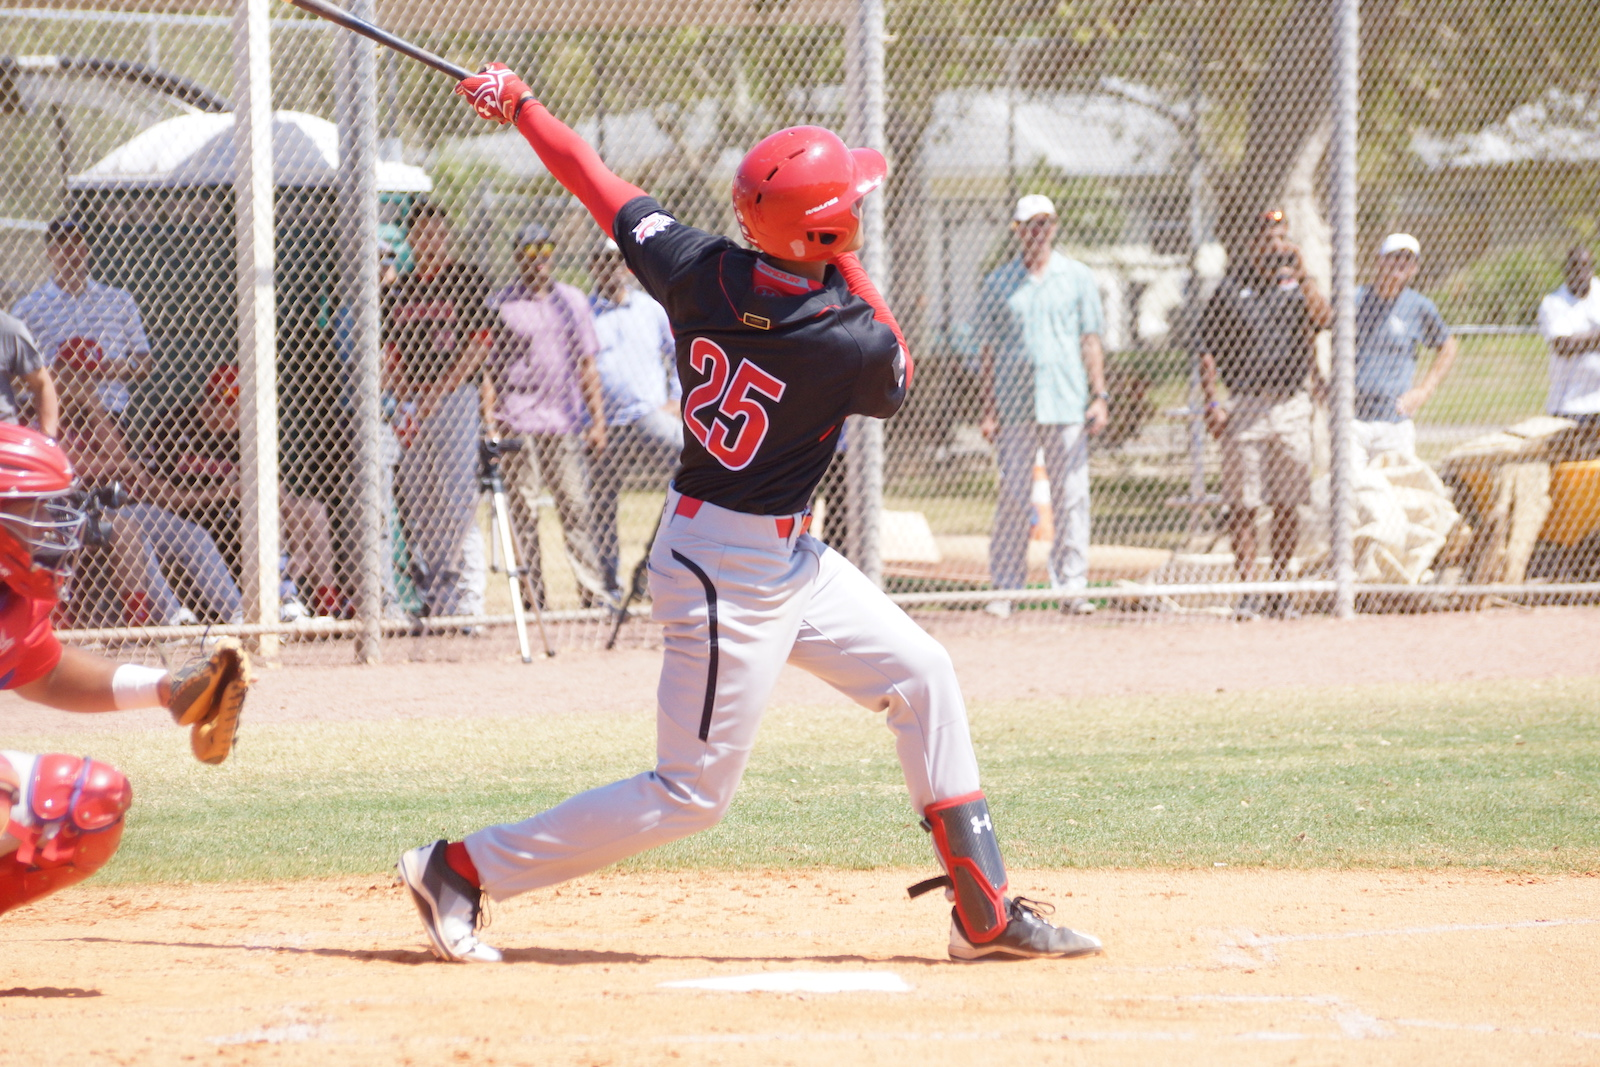 JNT SPRING: Phillies use long ball to top juniors